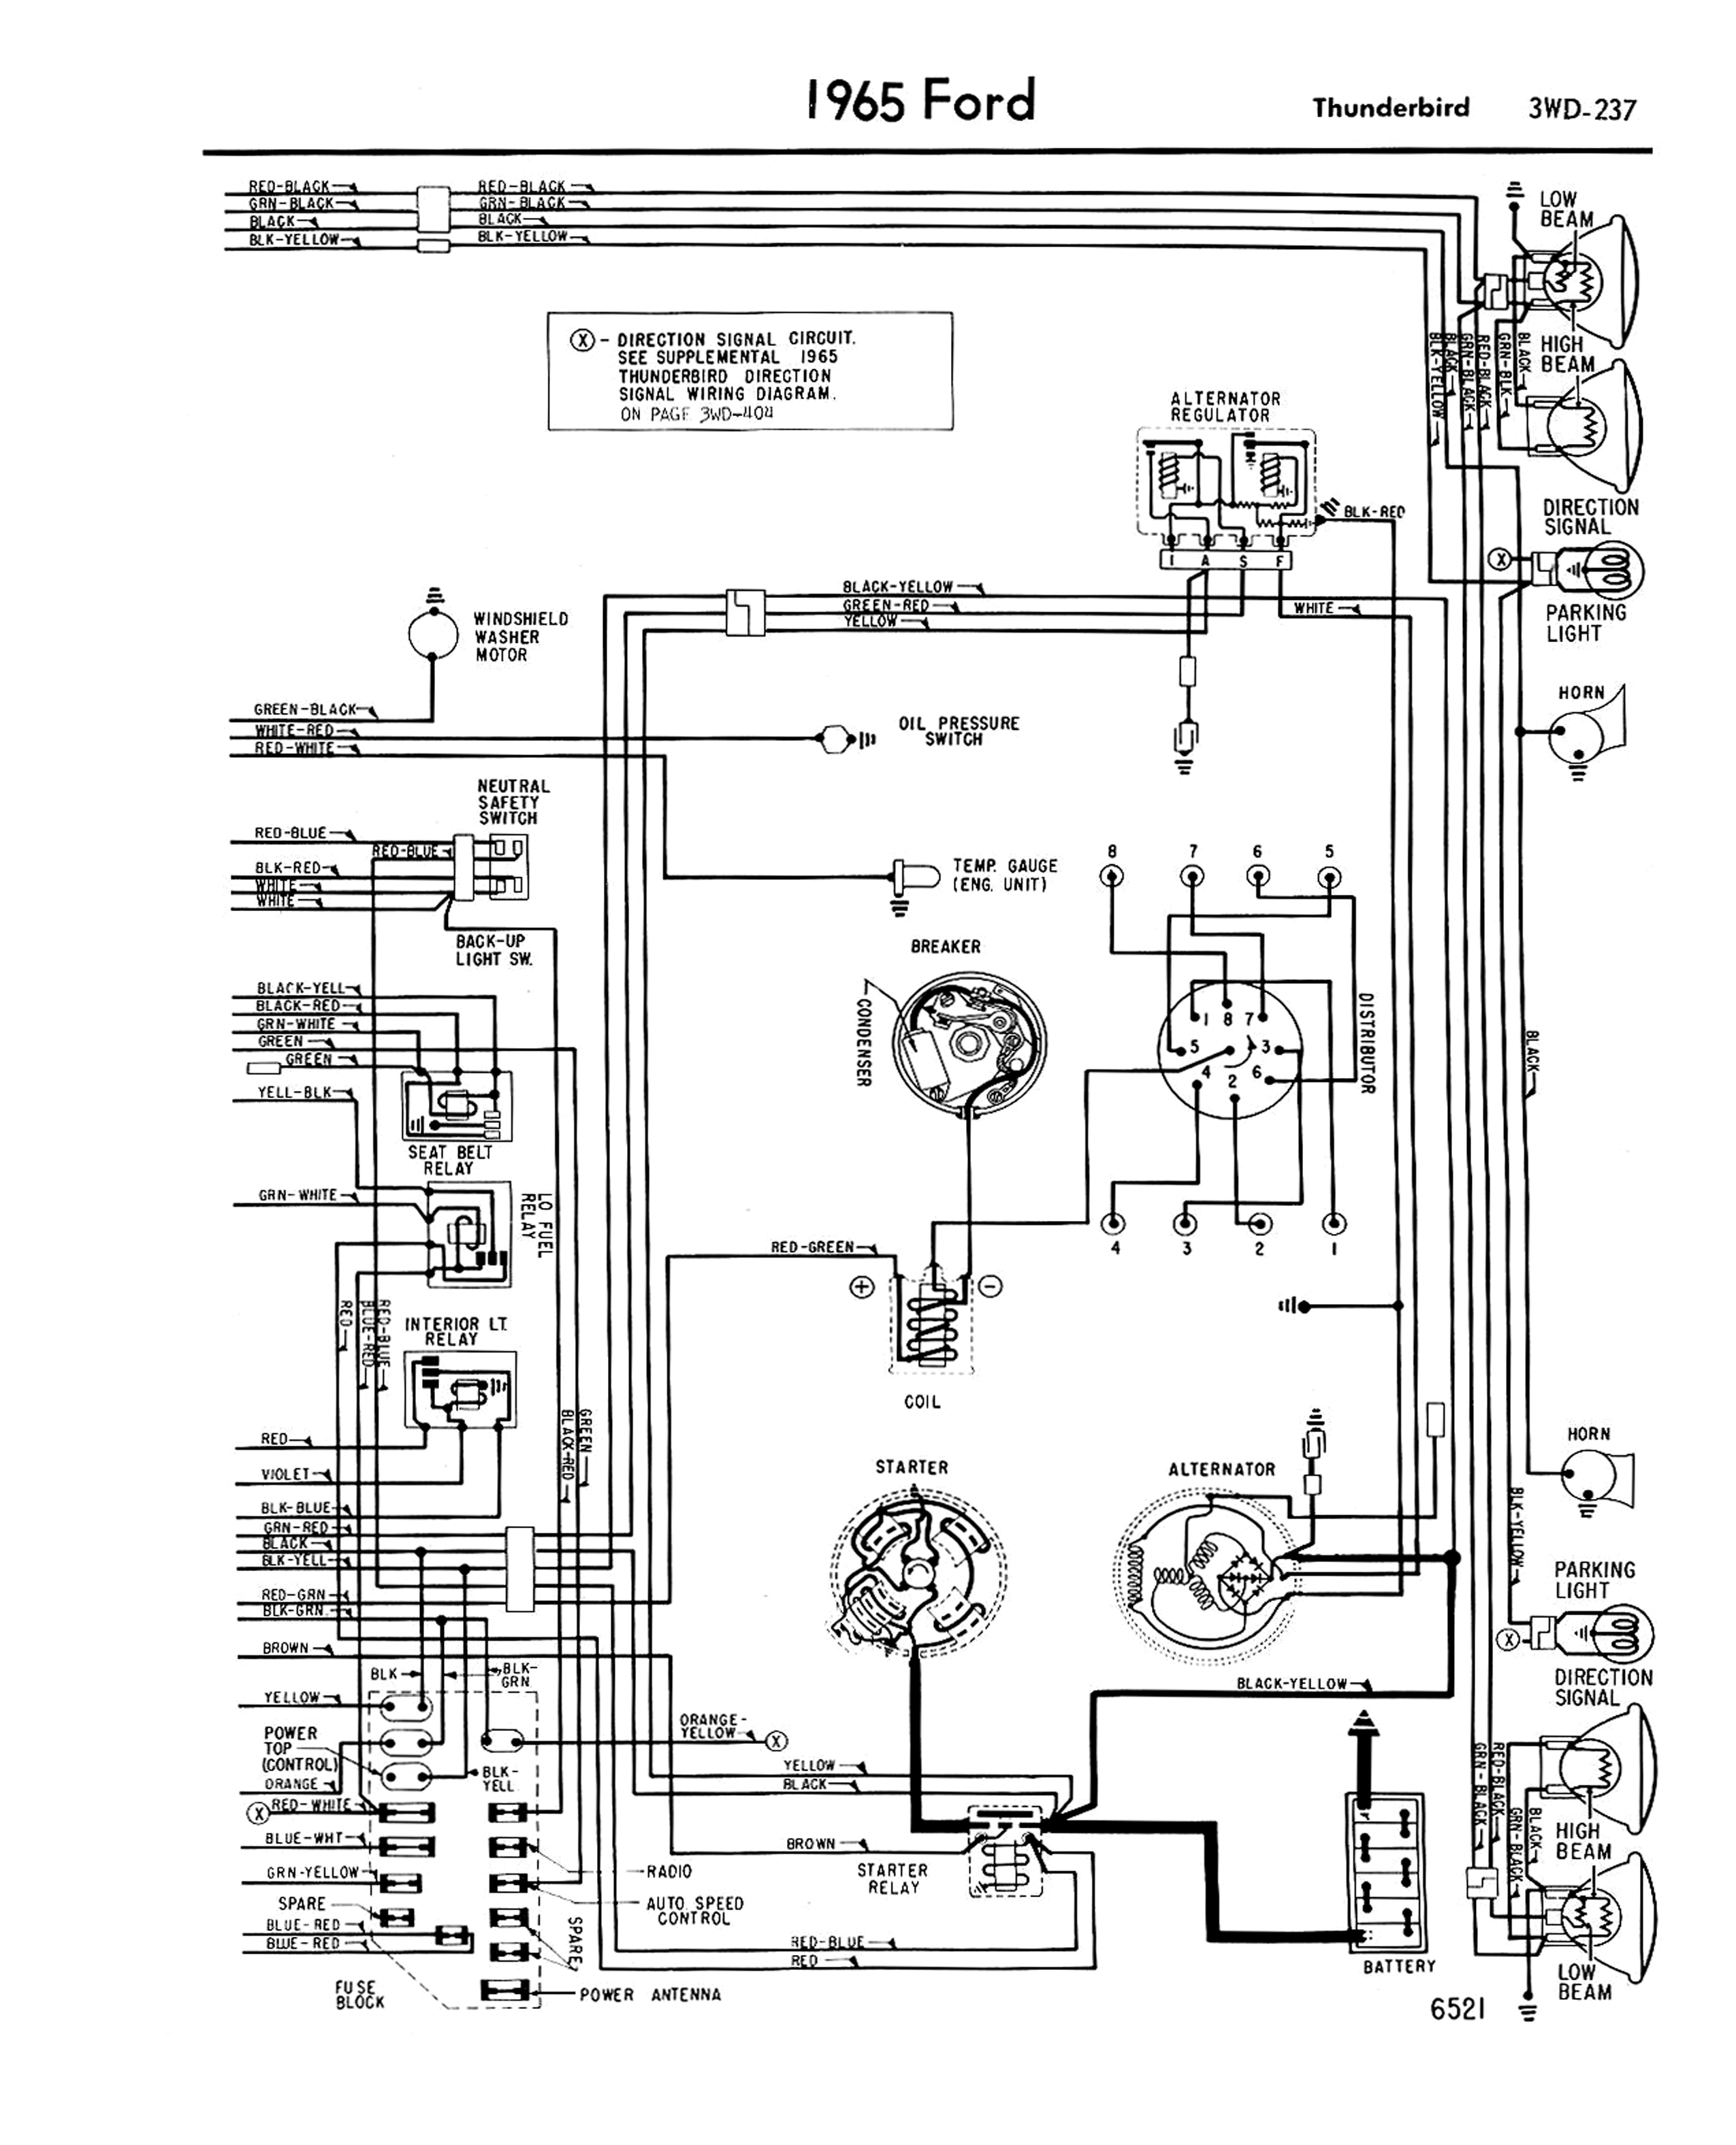 Built In Regulator Wiring Diagram 67 Camaro | Wiring Diagram on 67 camaro console wiring schematic, 67 camaro horn wiring, 1970 chevrolet camaro wiring schematic, 1986 camaro wiring schematic, 1967 camaro wiring schematic, 67 camaro engine schematic, 67 camaro headlamp wiring, 68 camaro wiring schematic, 1969 camaro wiring schematic,